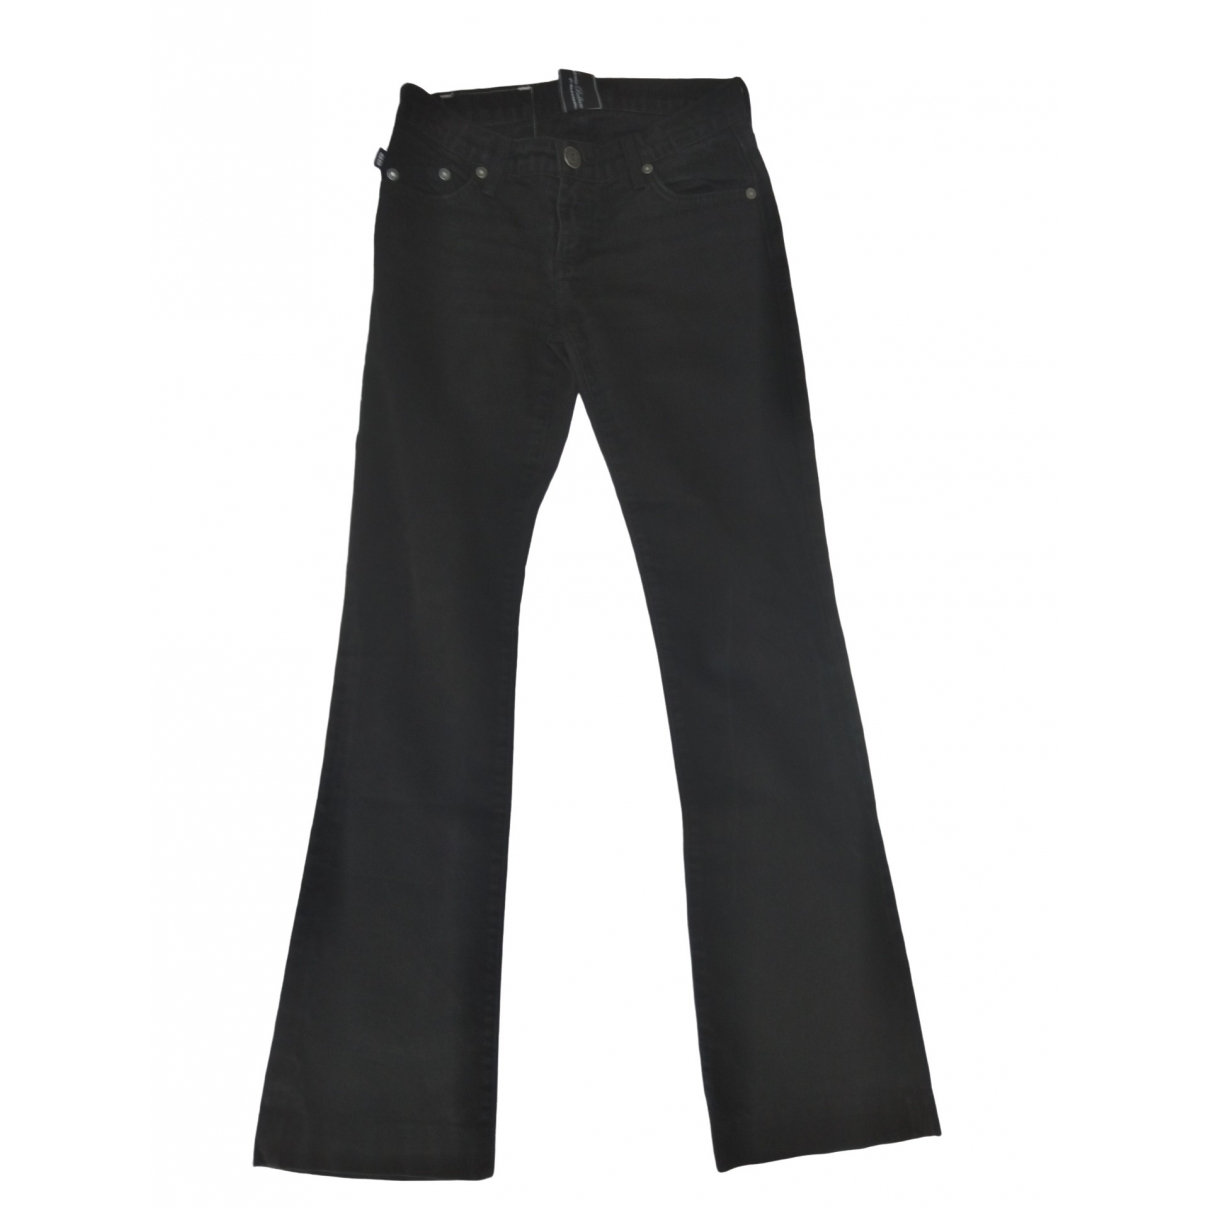 Victoria Beckham \N Black Cotton Jeans for Women 25 US